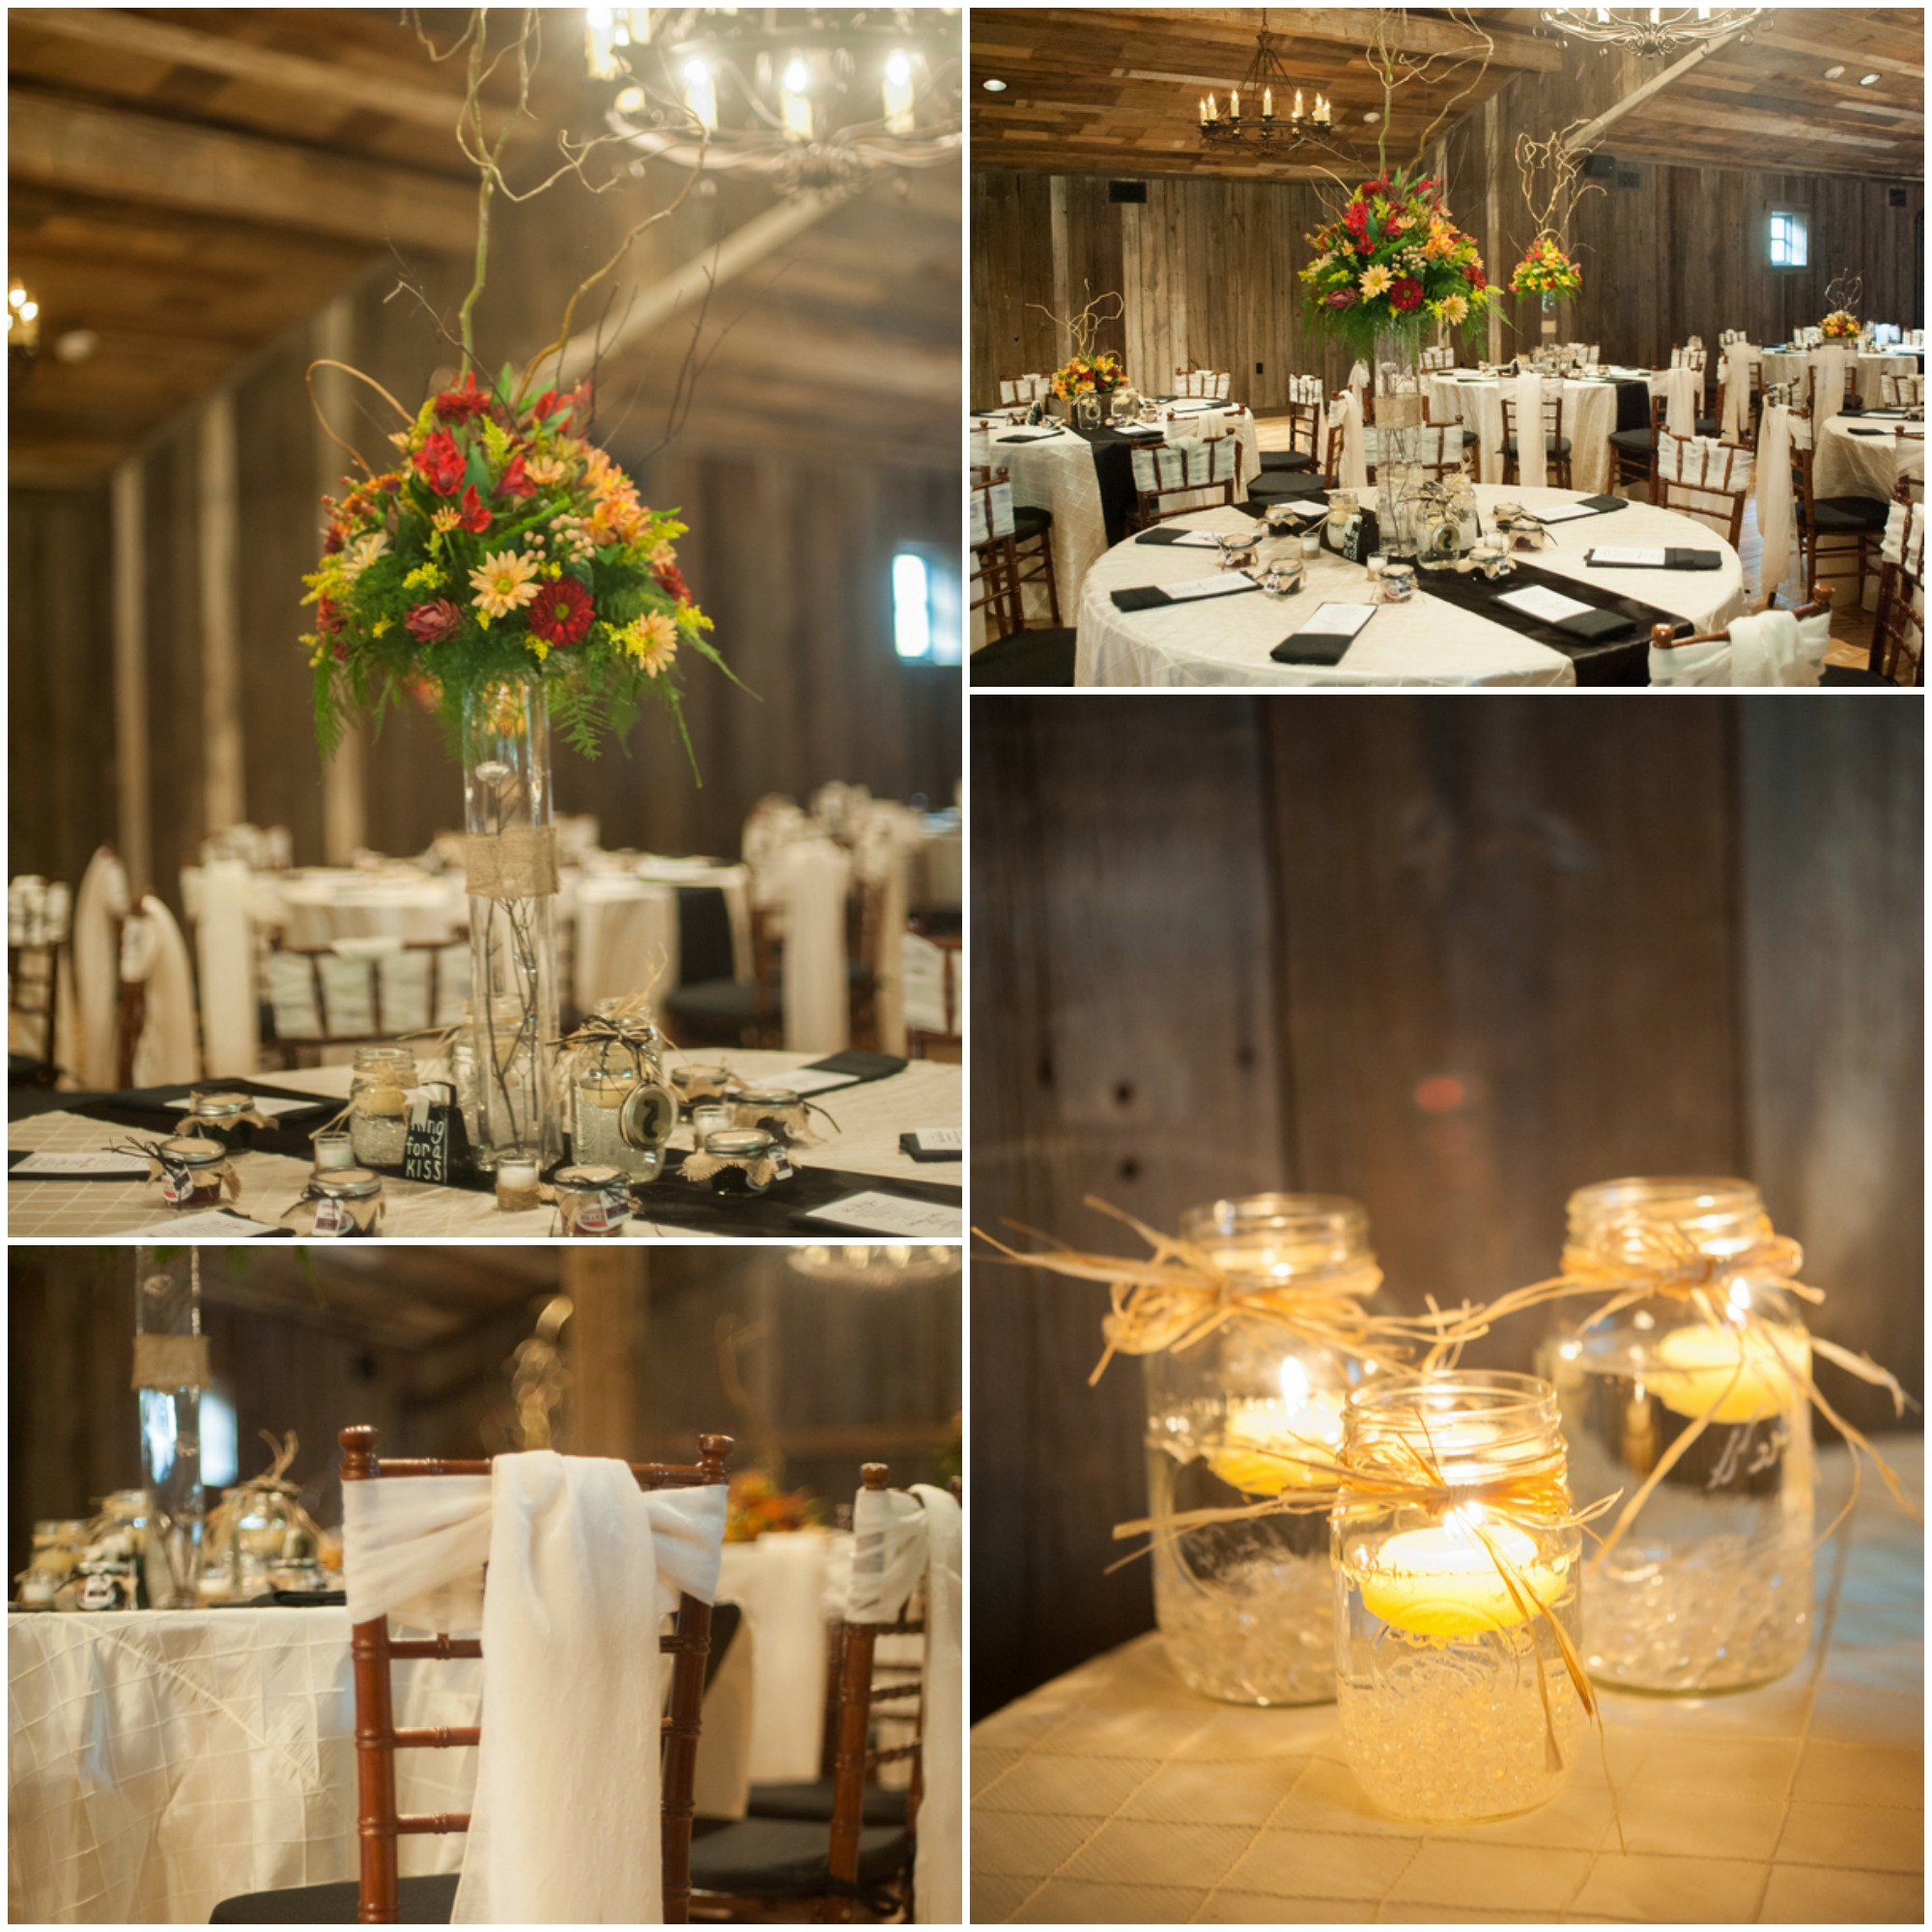 Rustic Wedding Chic  Rustic Country Weddings  Rustic Wedding Ideas and Venue Guide